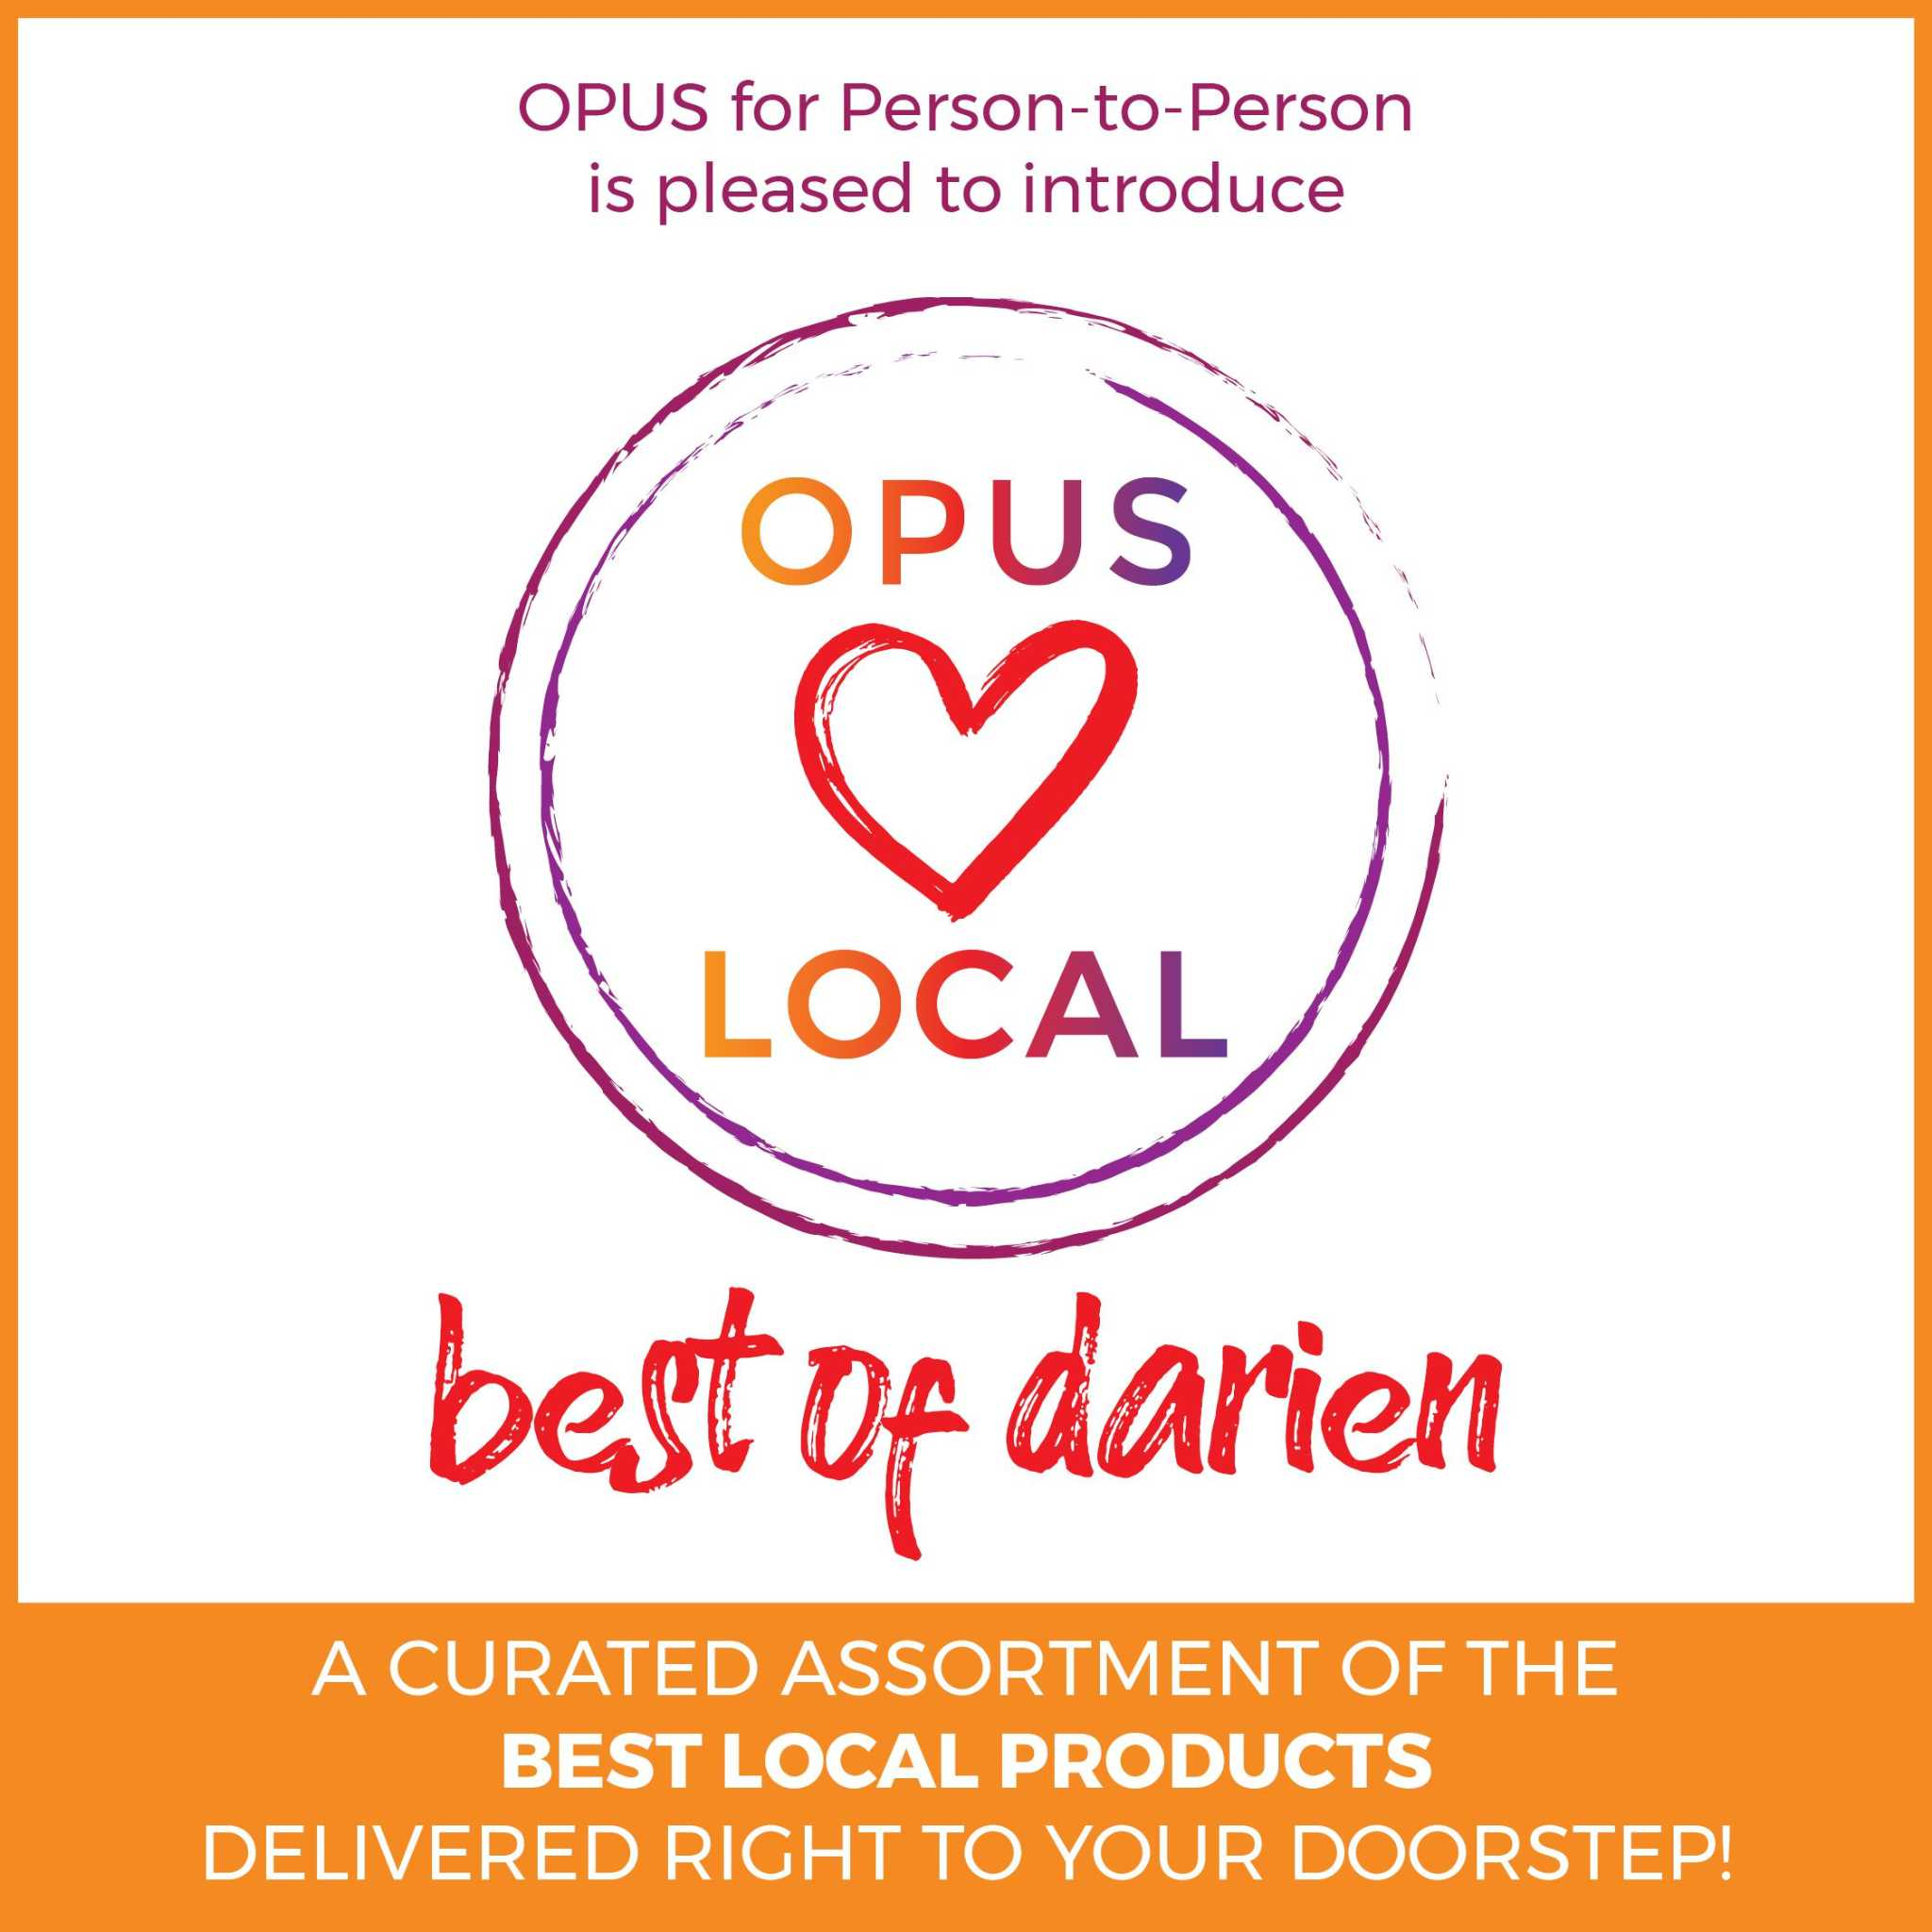 Boxes of curated Darien business goods will benefit Person-to-Person